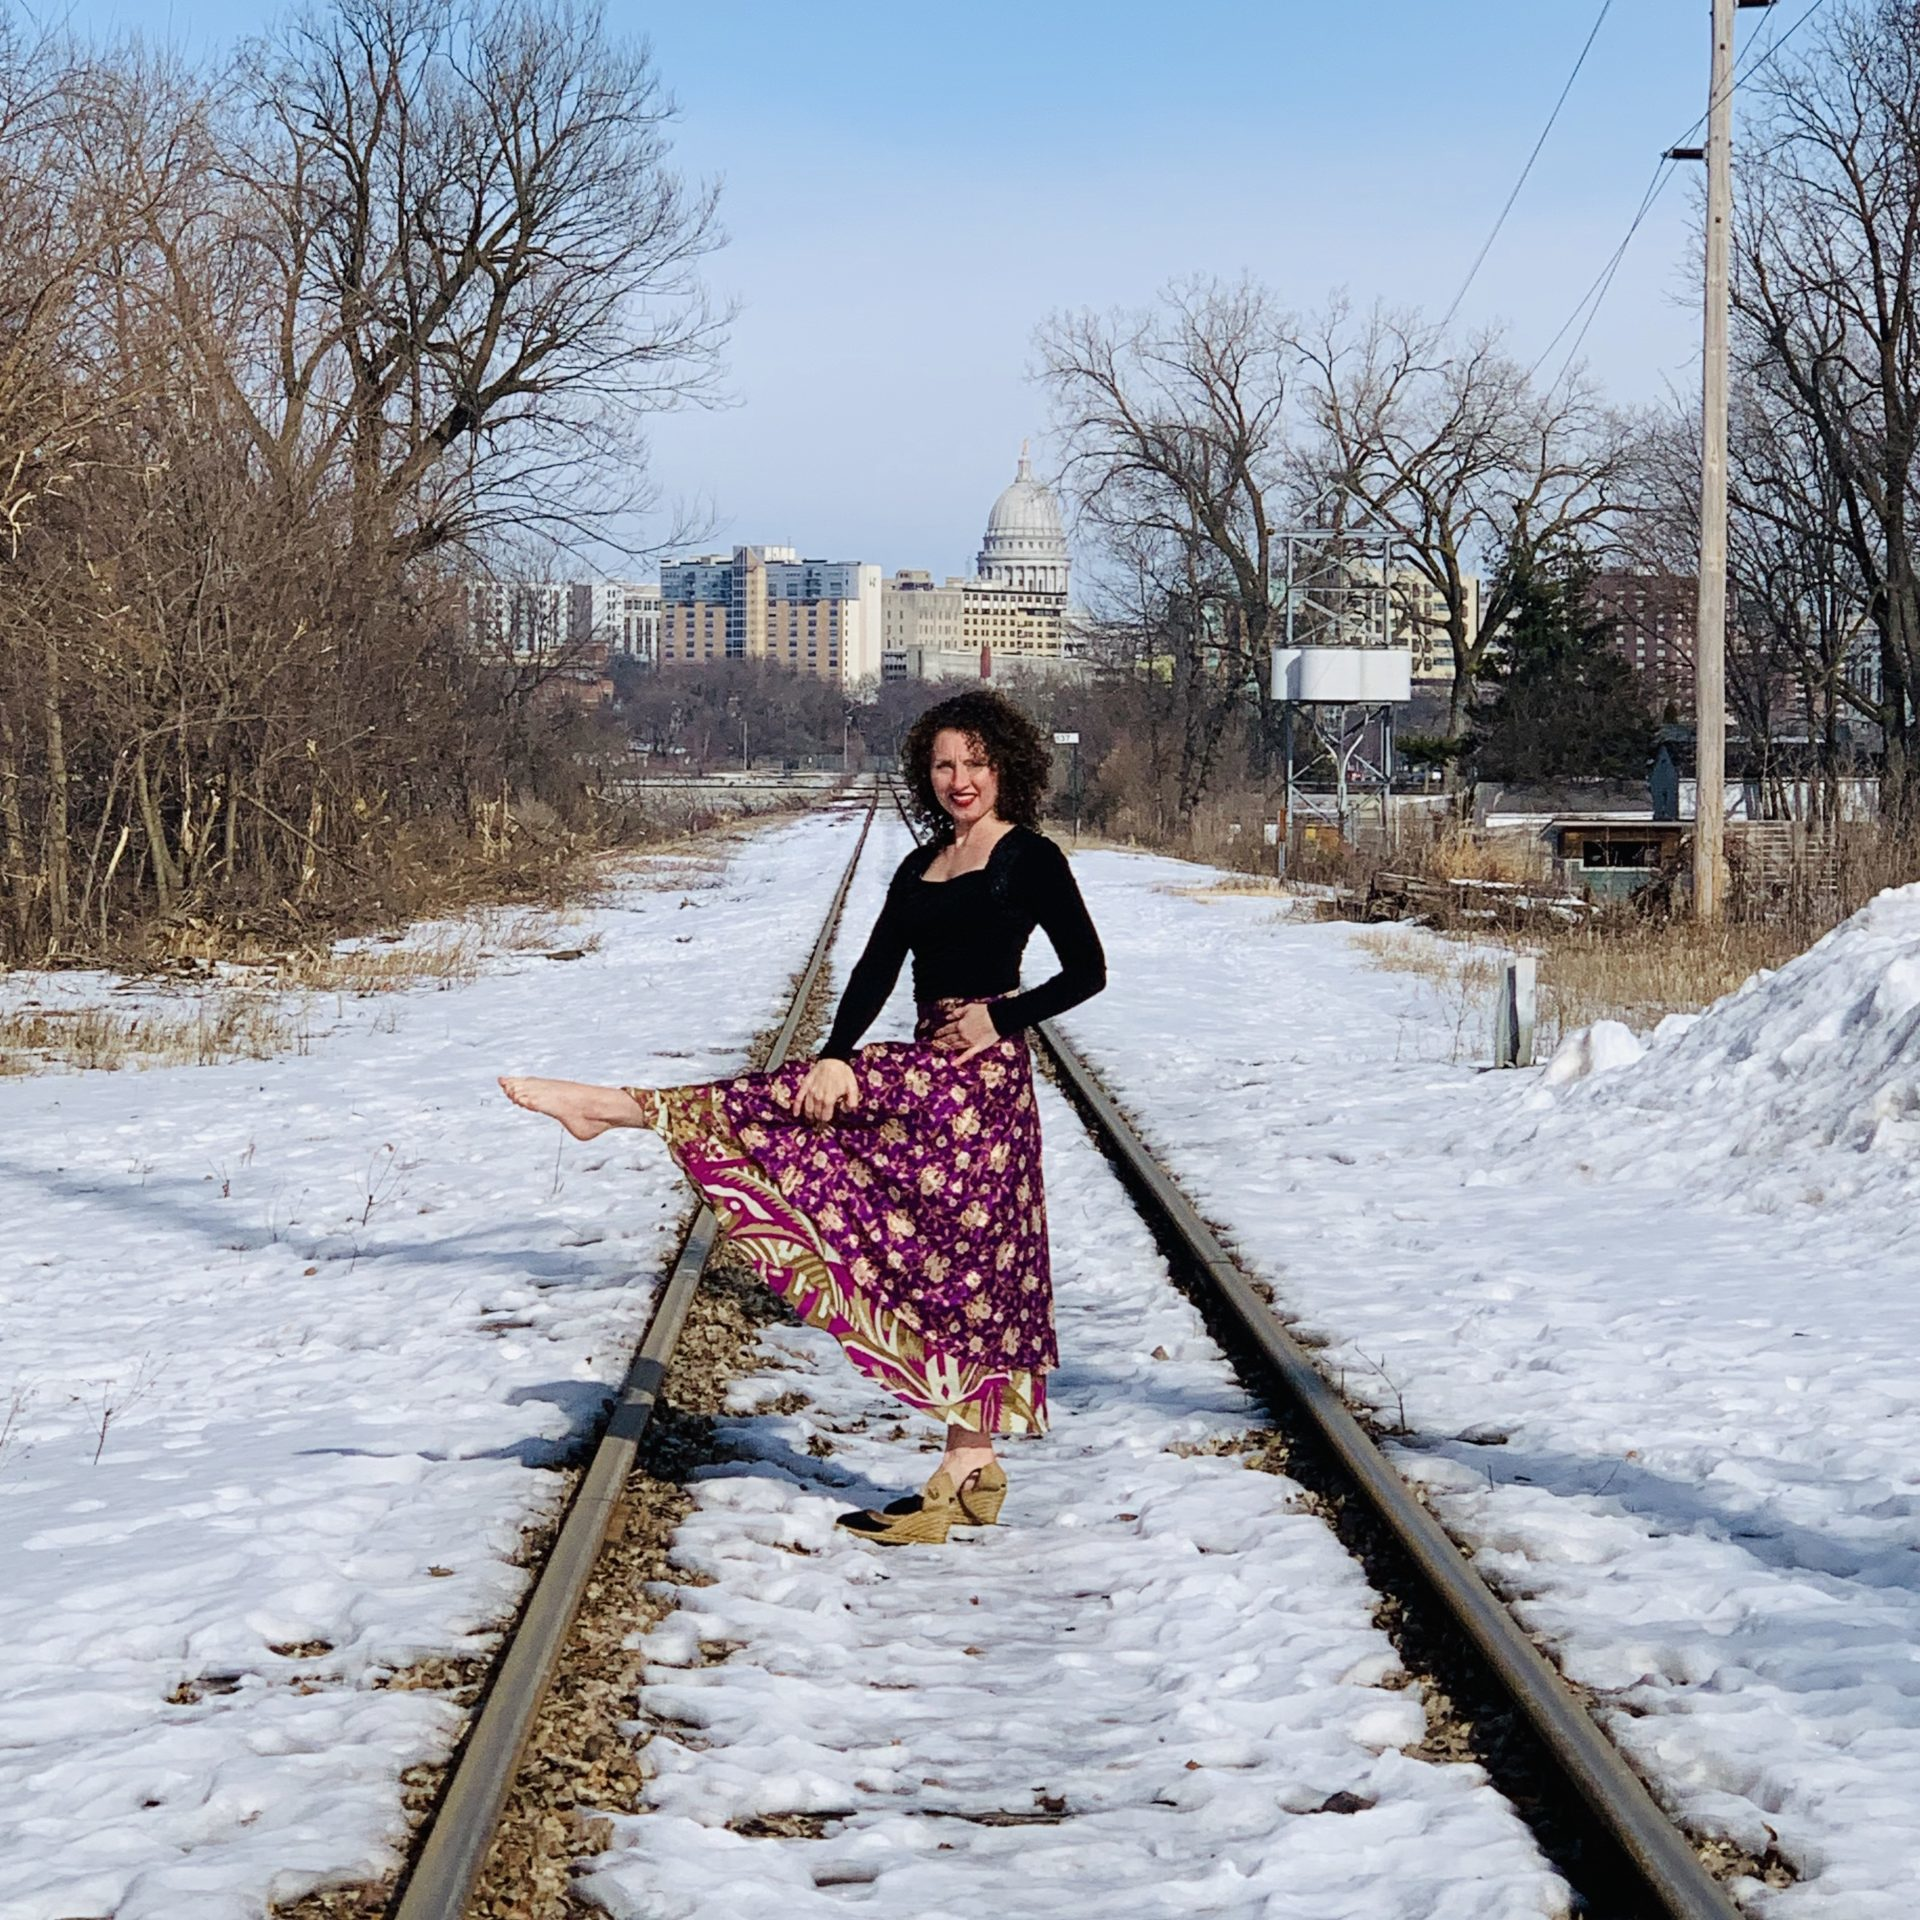 Lindsay Rogers on the railroad